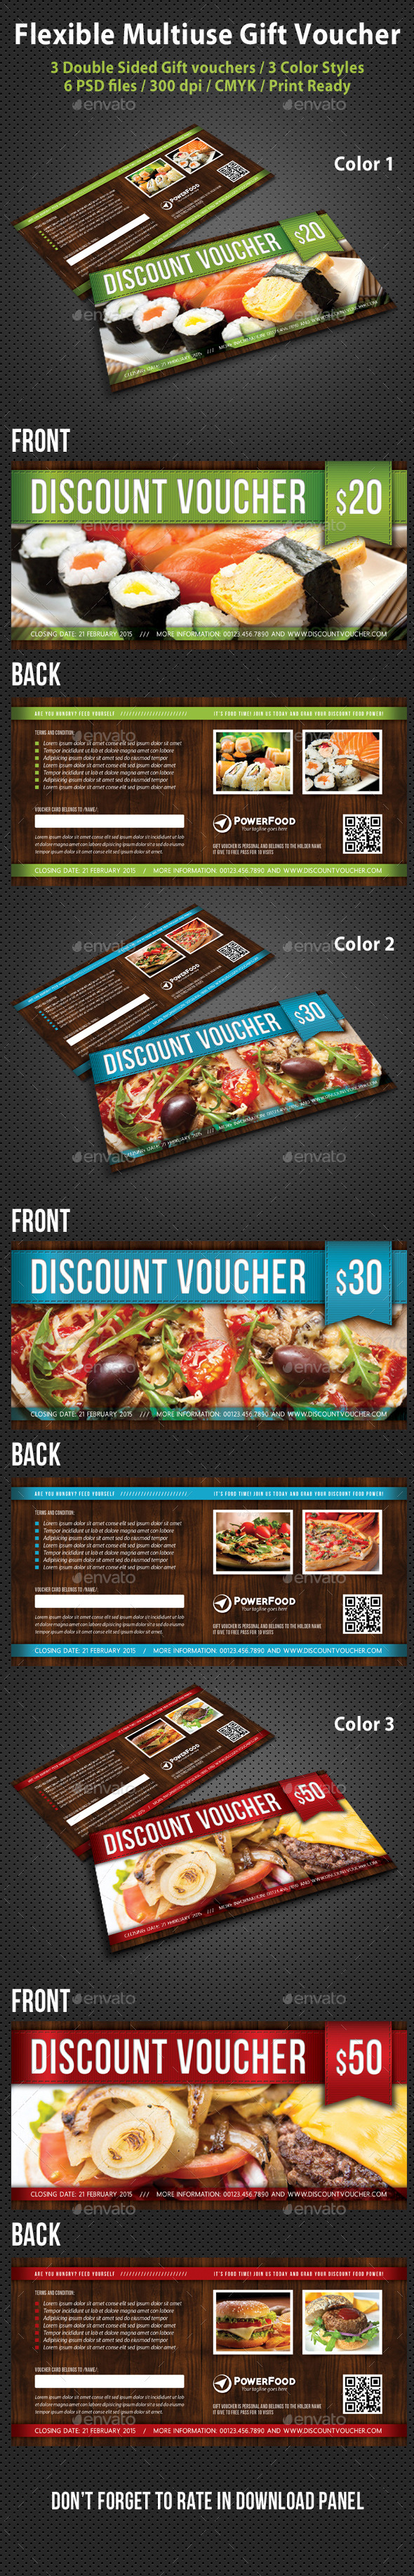 Flexible Multiuse Gift Voucher V02 - Cards & Invites Print Templates